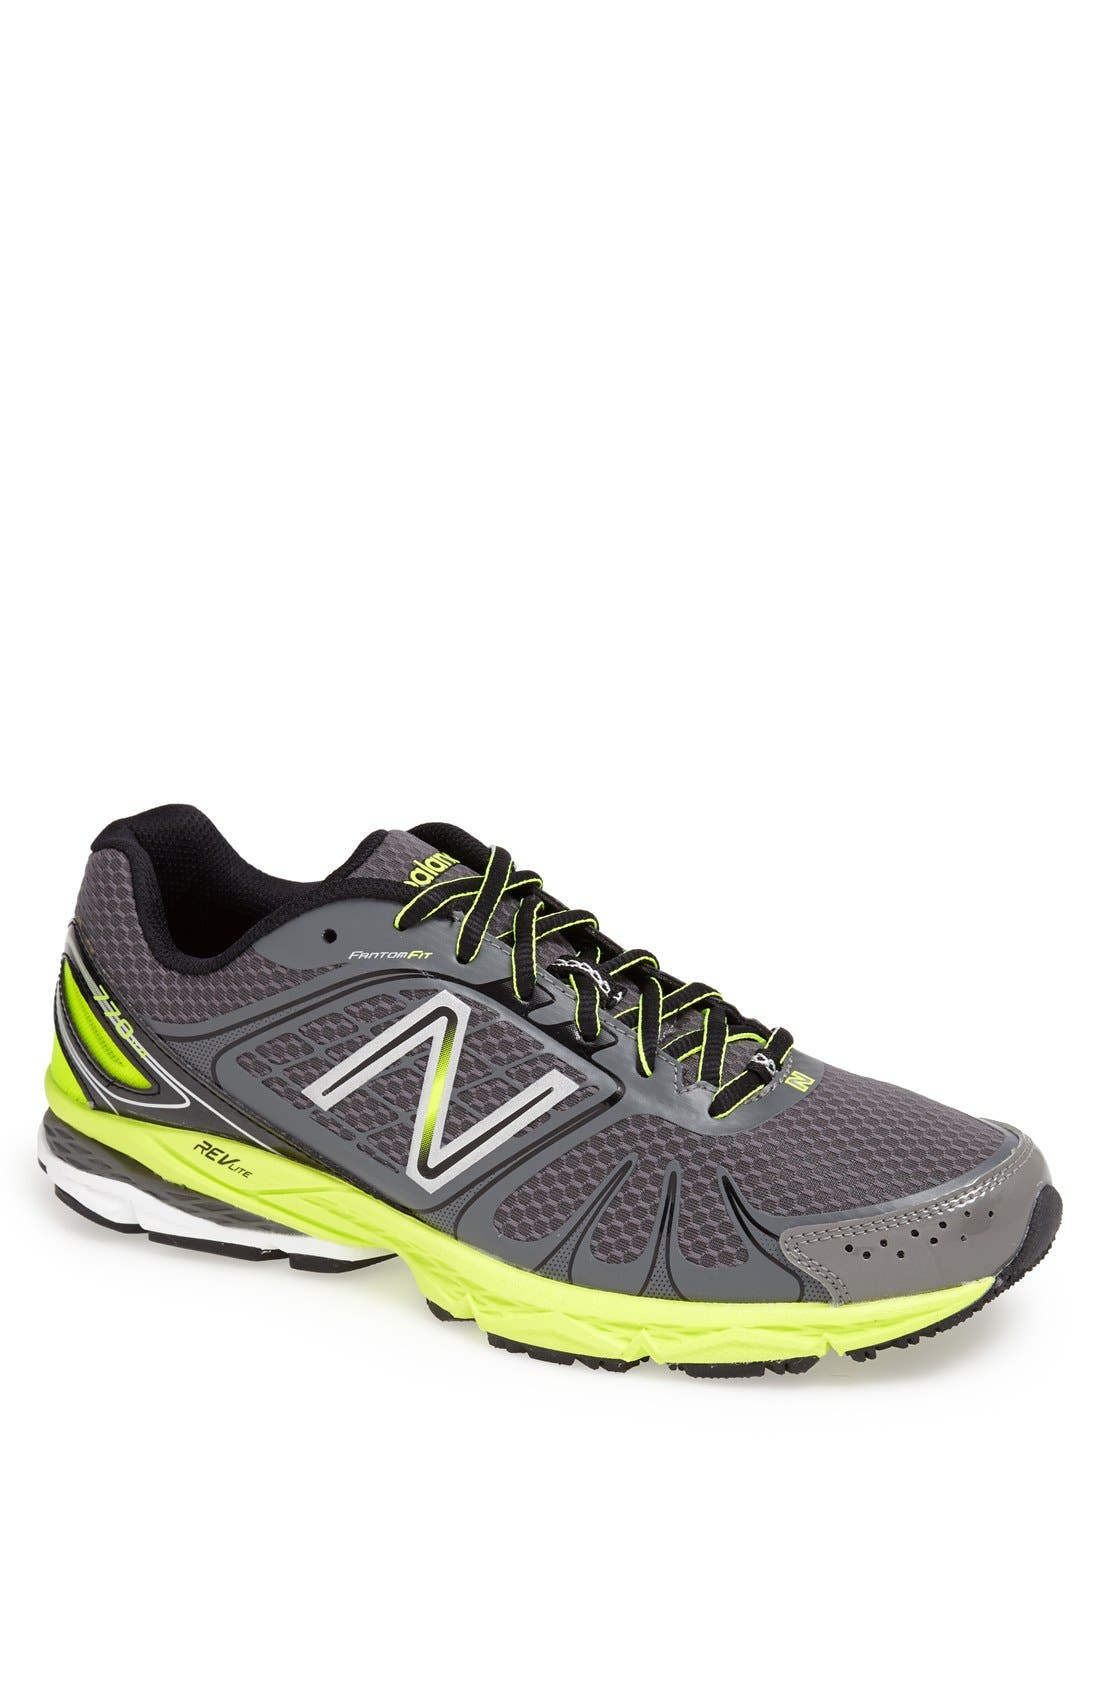 Alternate Image 1 Selected - New Balance '770' Running Shoe (Men)